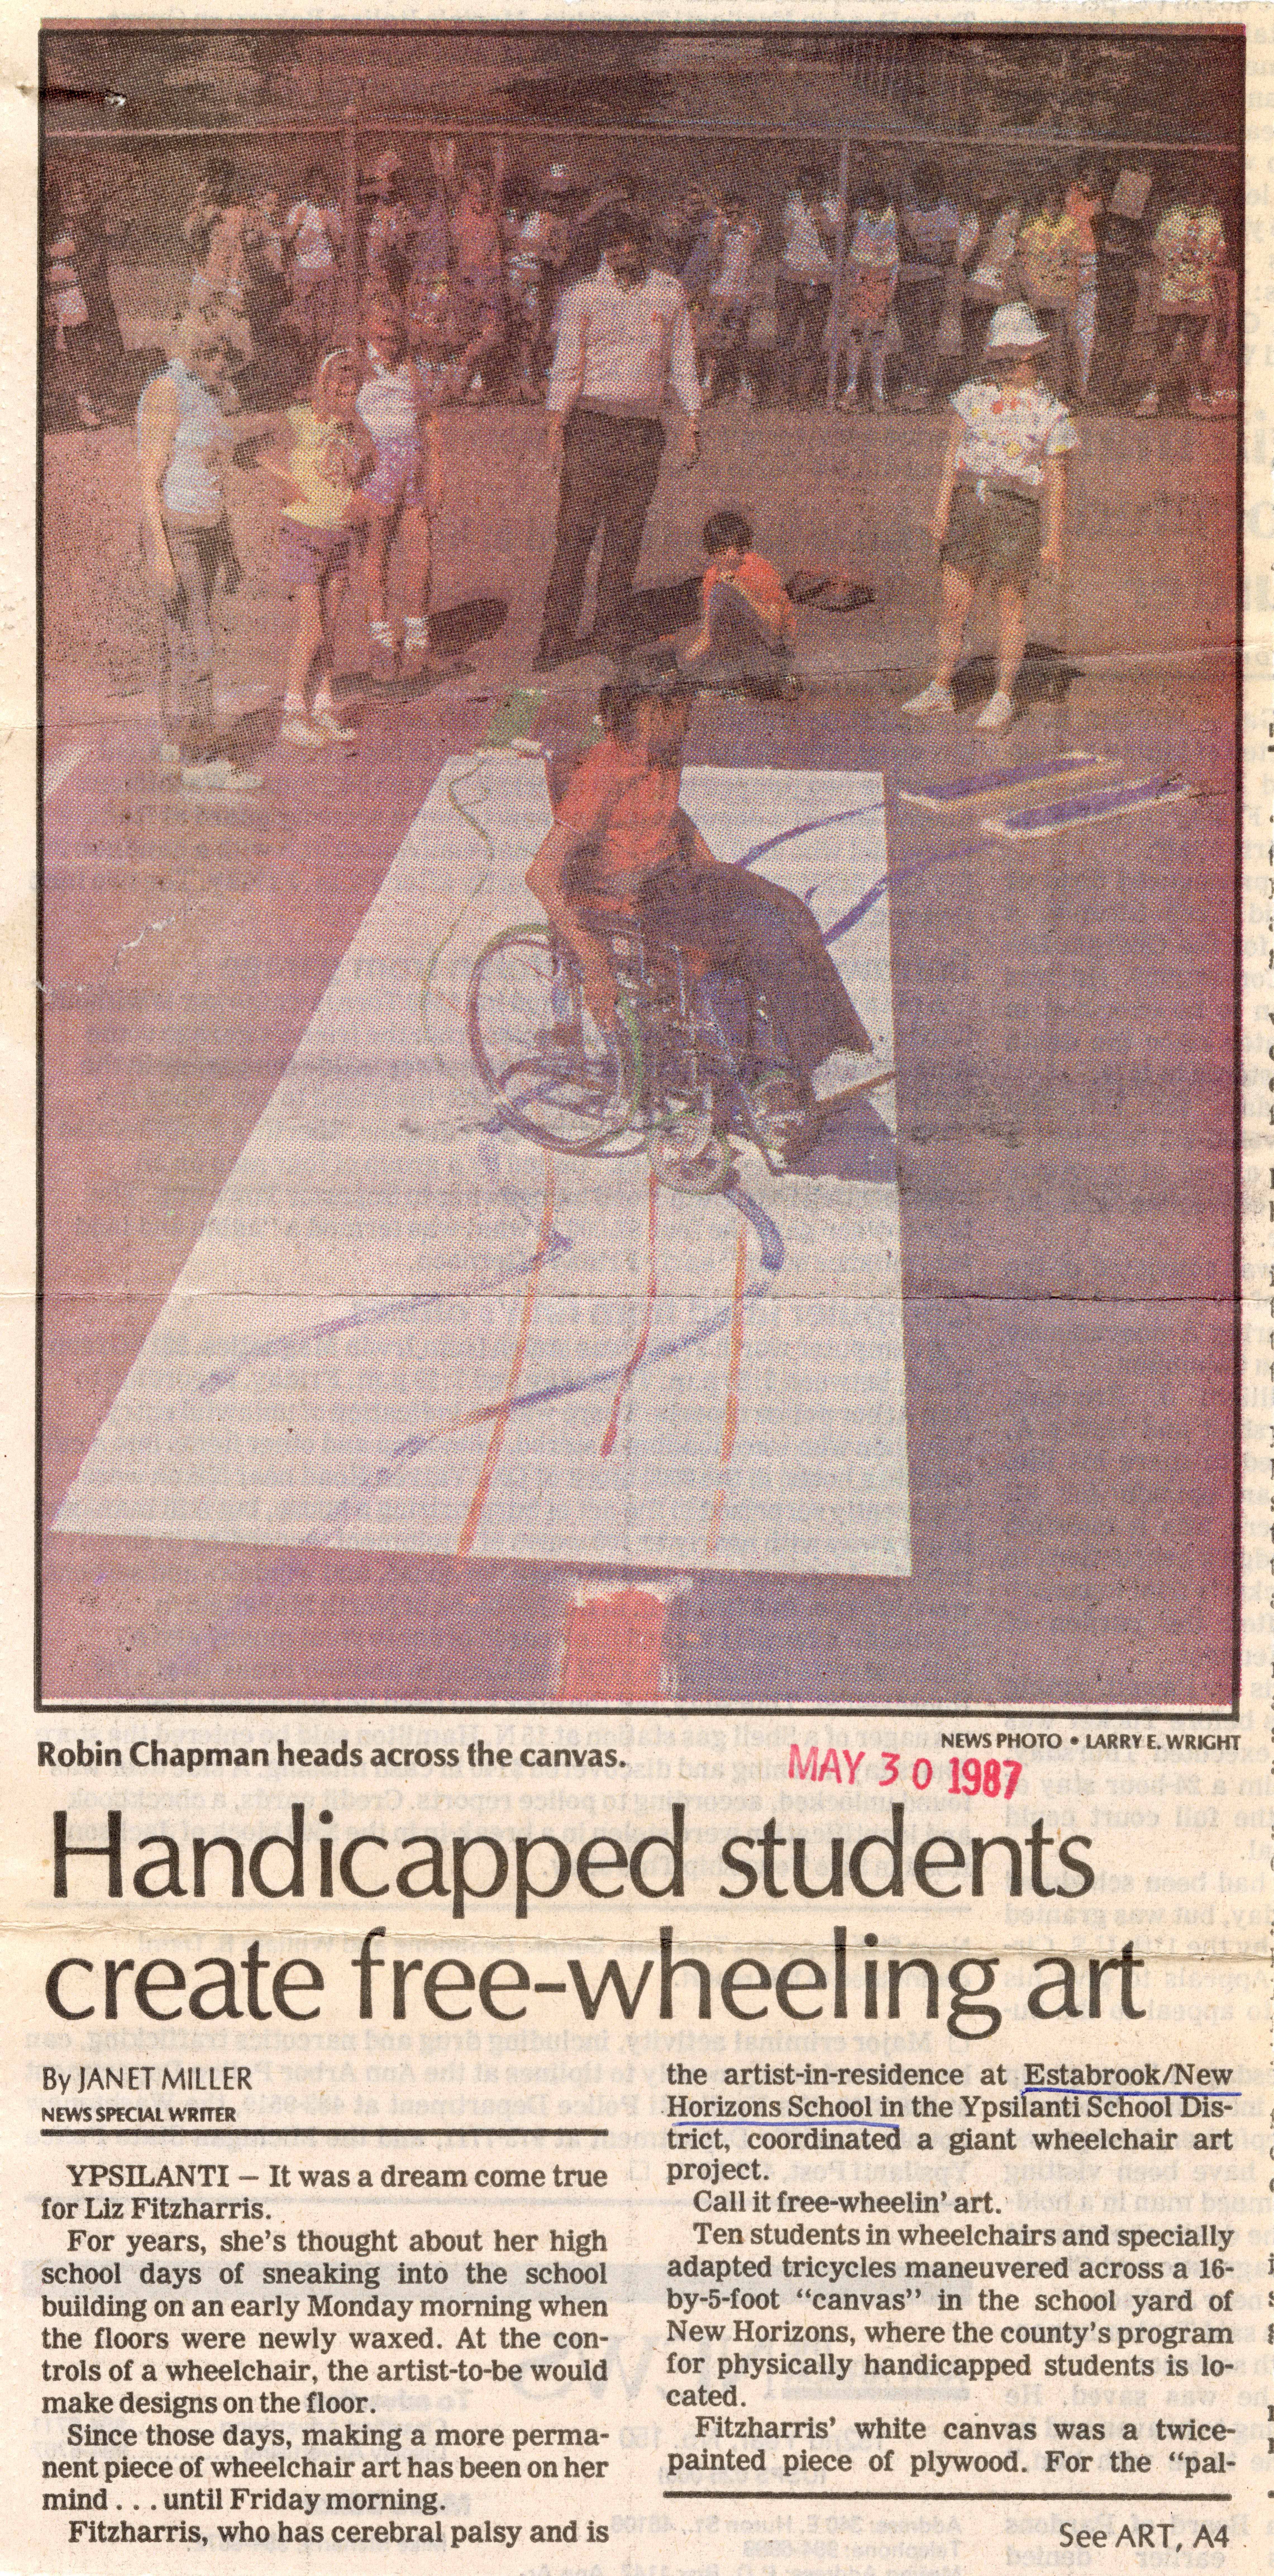 Handicapped students create free-wheeling art image